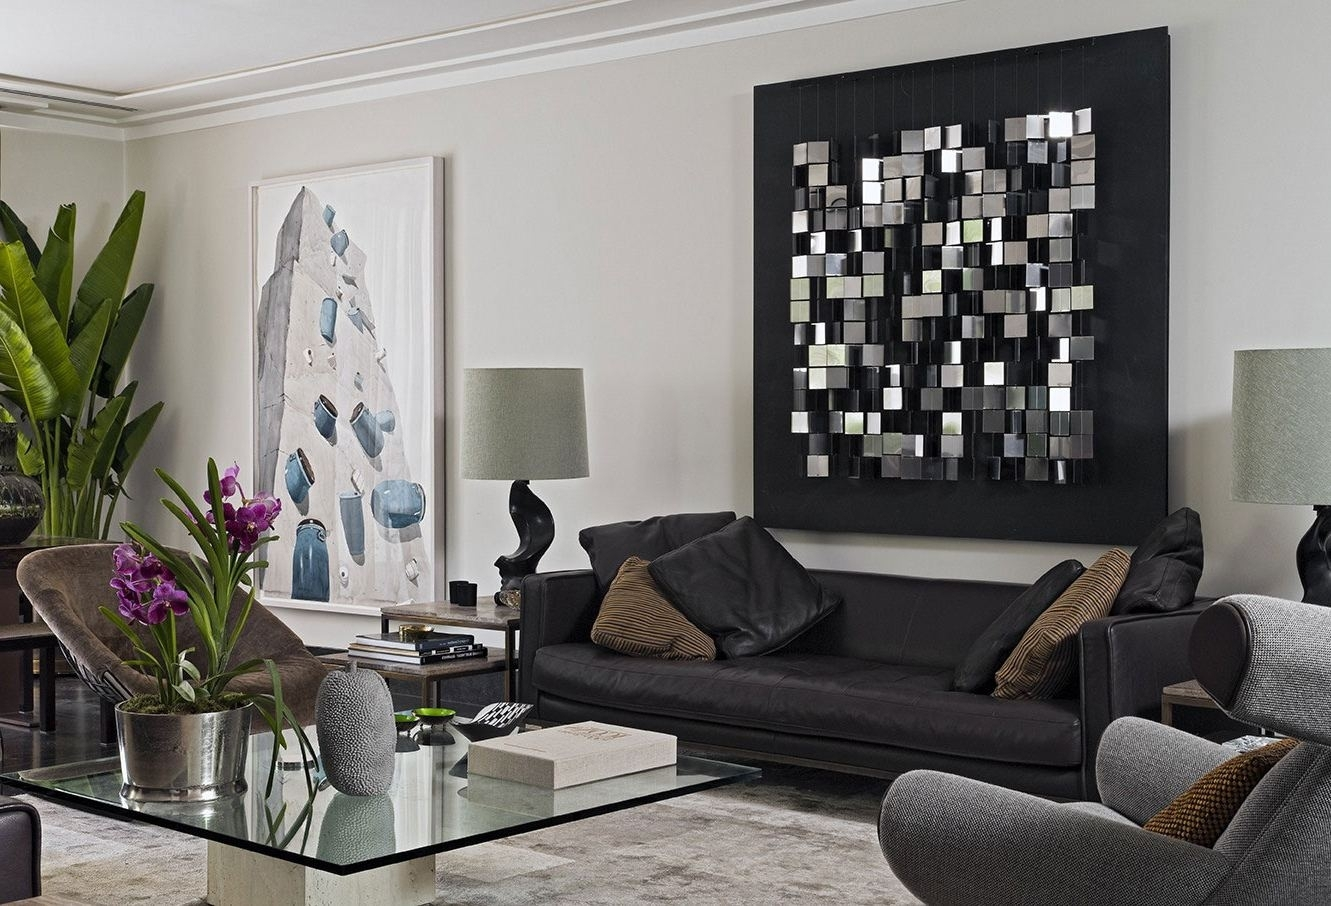 White Living Room Furniture Decorative Gold Finishes Wall Art Within Latest Modern Wall Art Decors (Gallery 4 of 20)